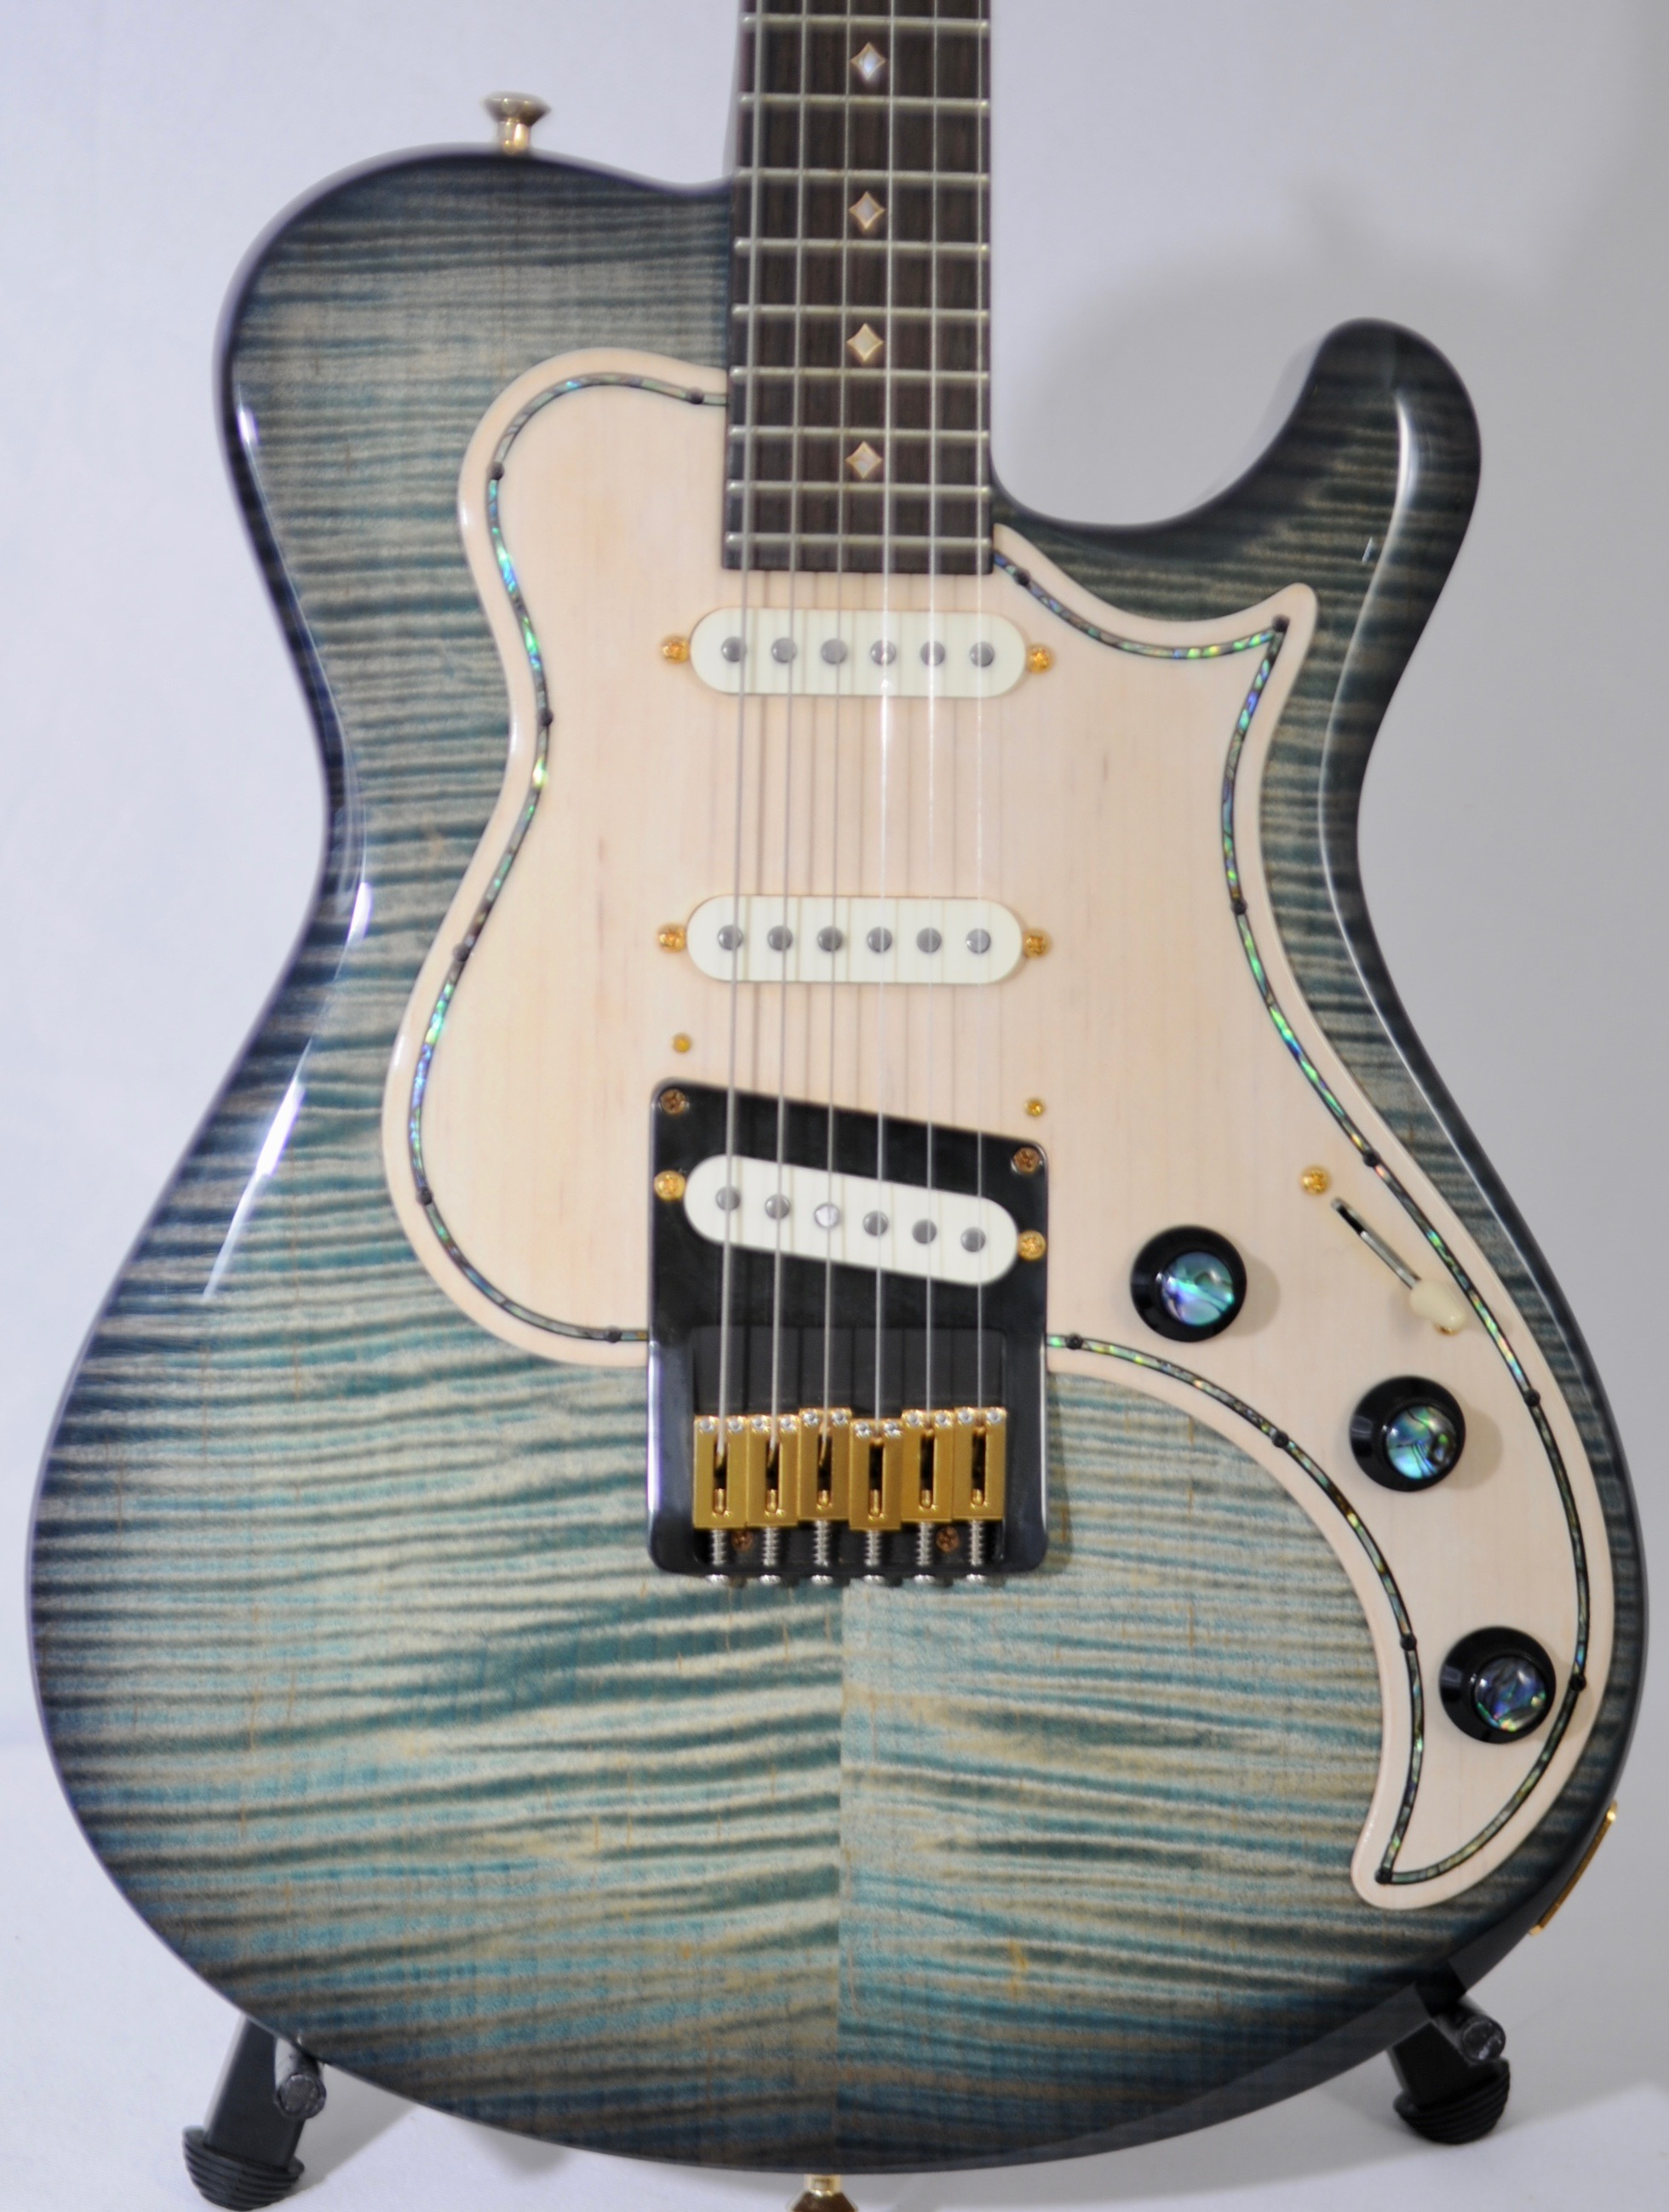 Knaggs PRE-PRODUCTION Choptank SERIAL #1